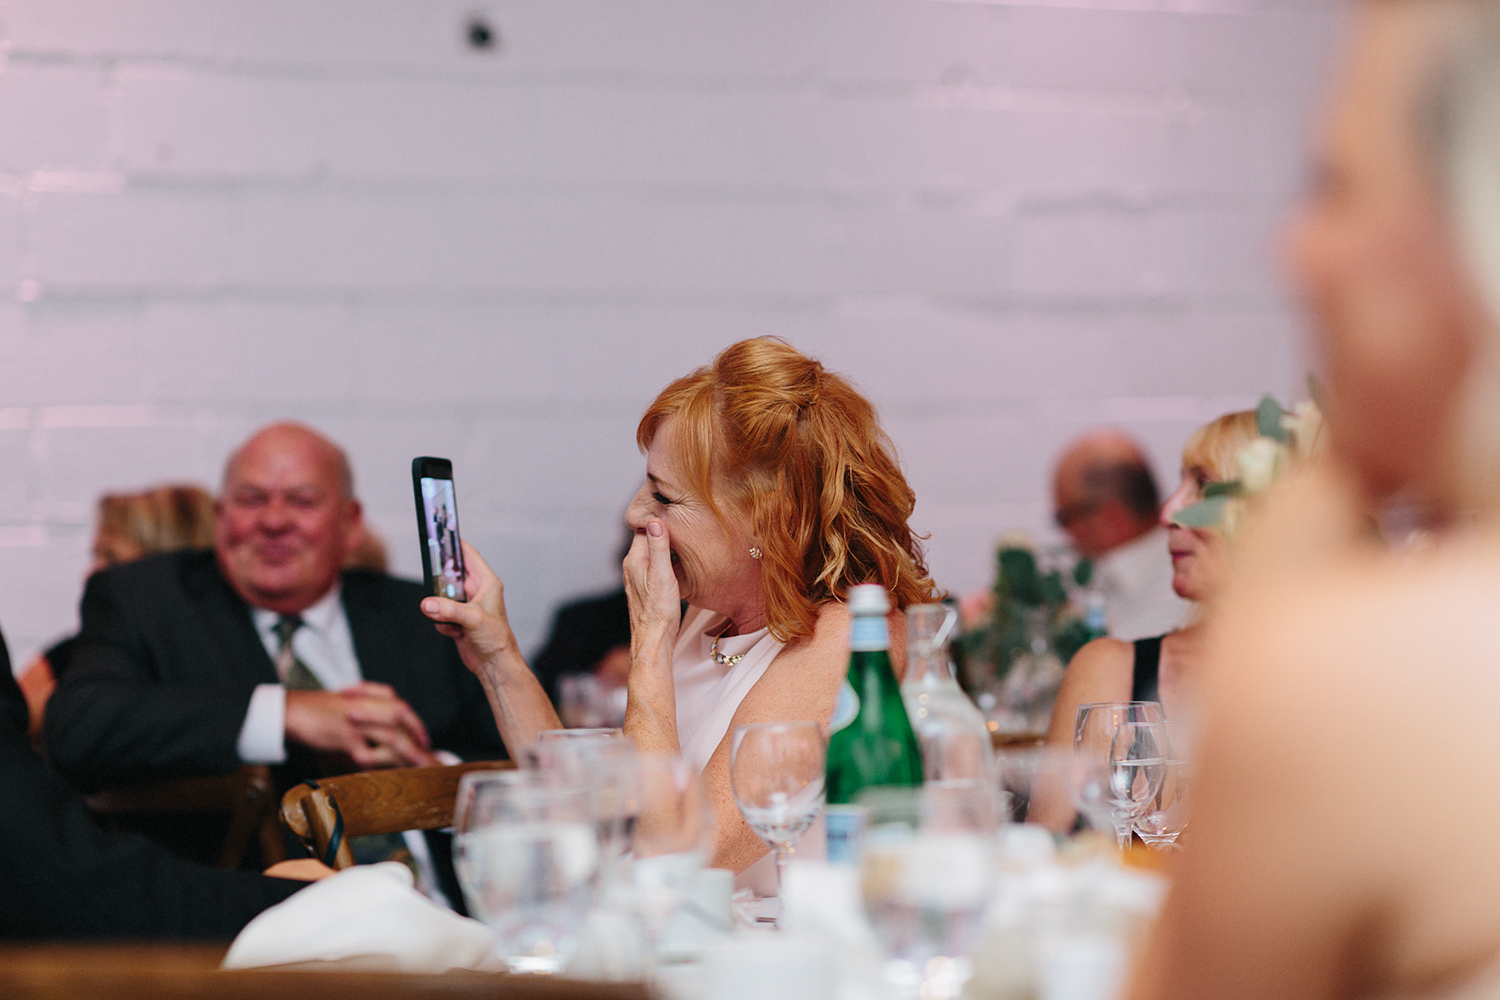 Best-Wedding-photographers-Toronto-NAtural-Candid-wedding-photography-Airship37-Reception-Venue-speeches-guests-laughing-cute.jpg